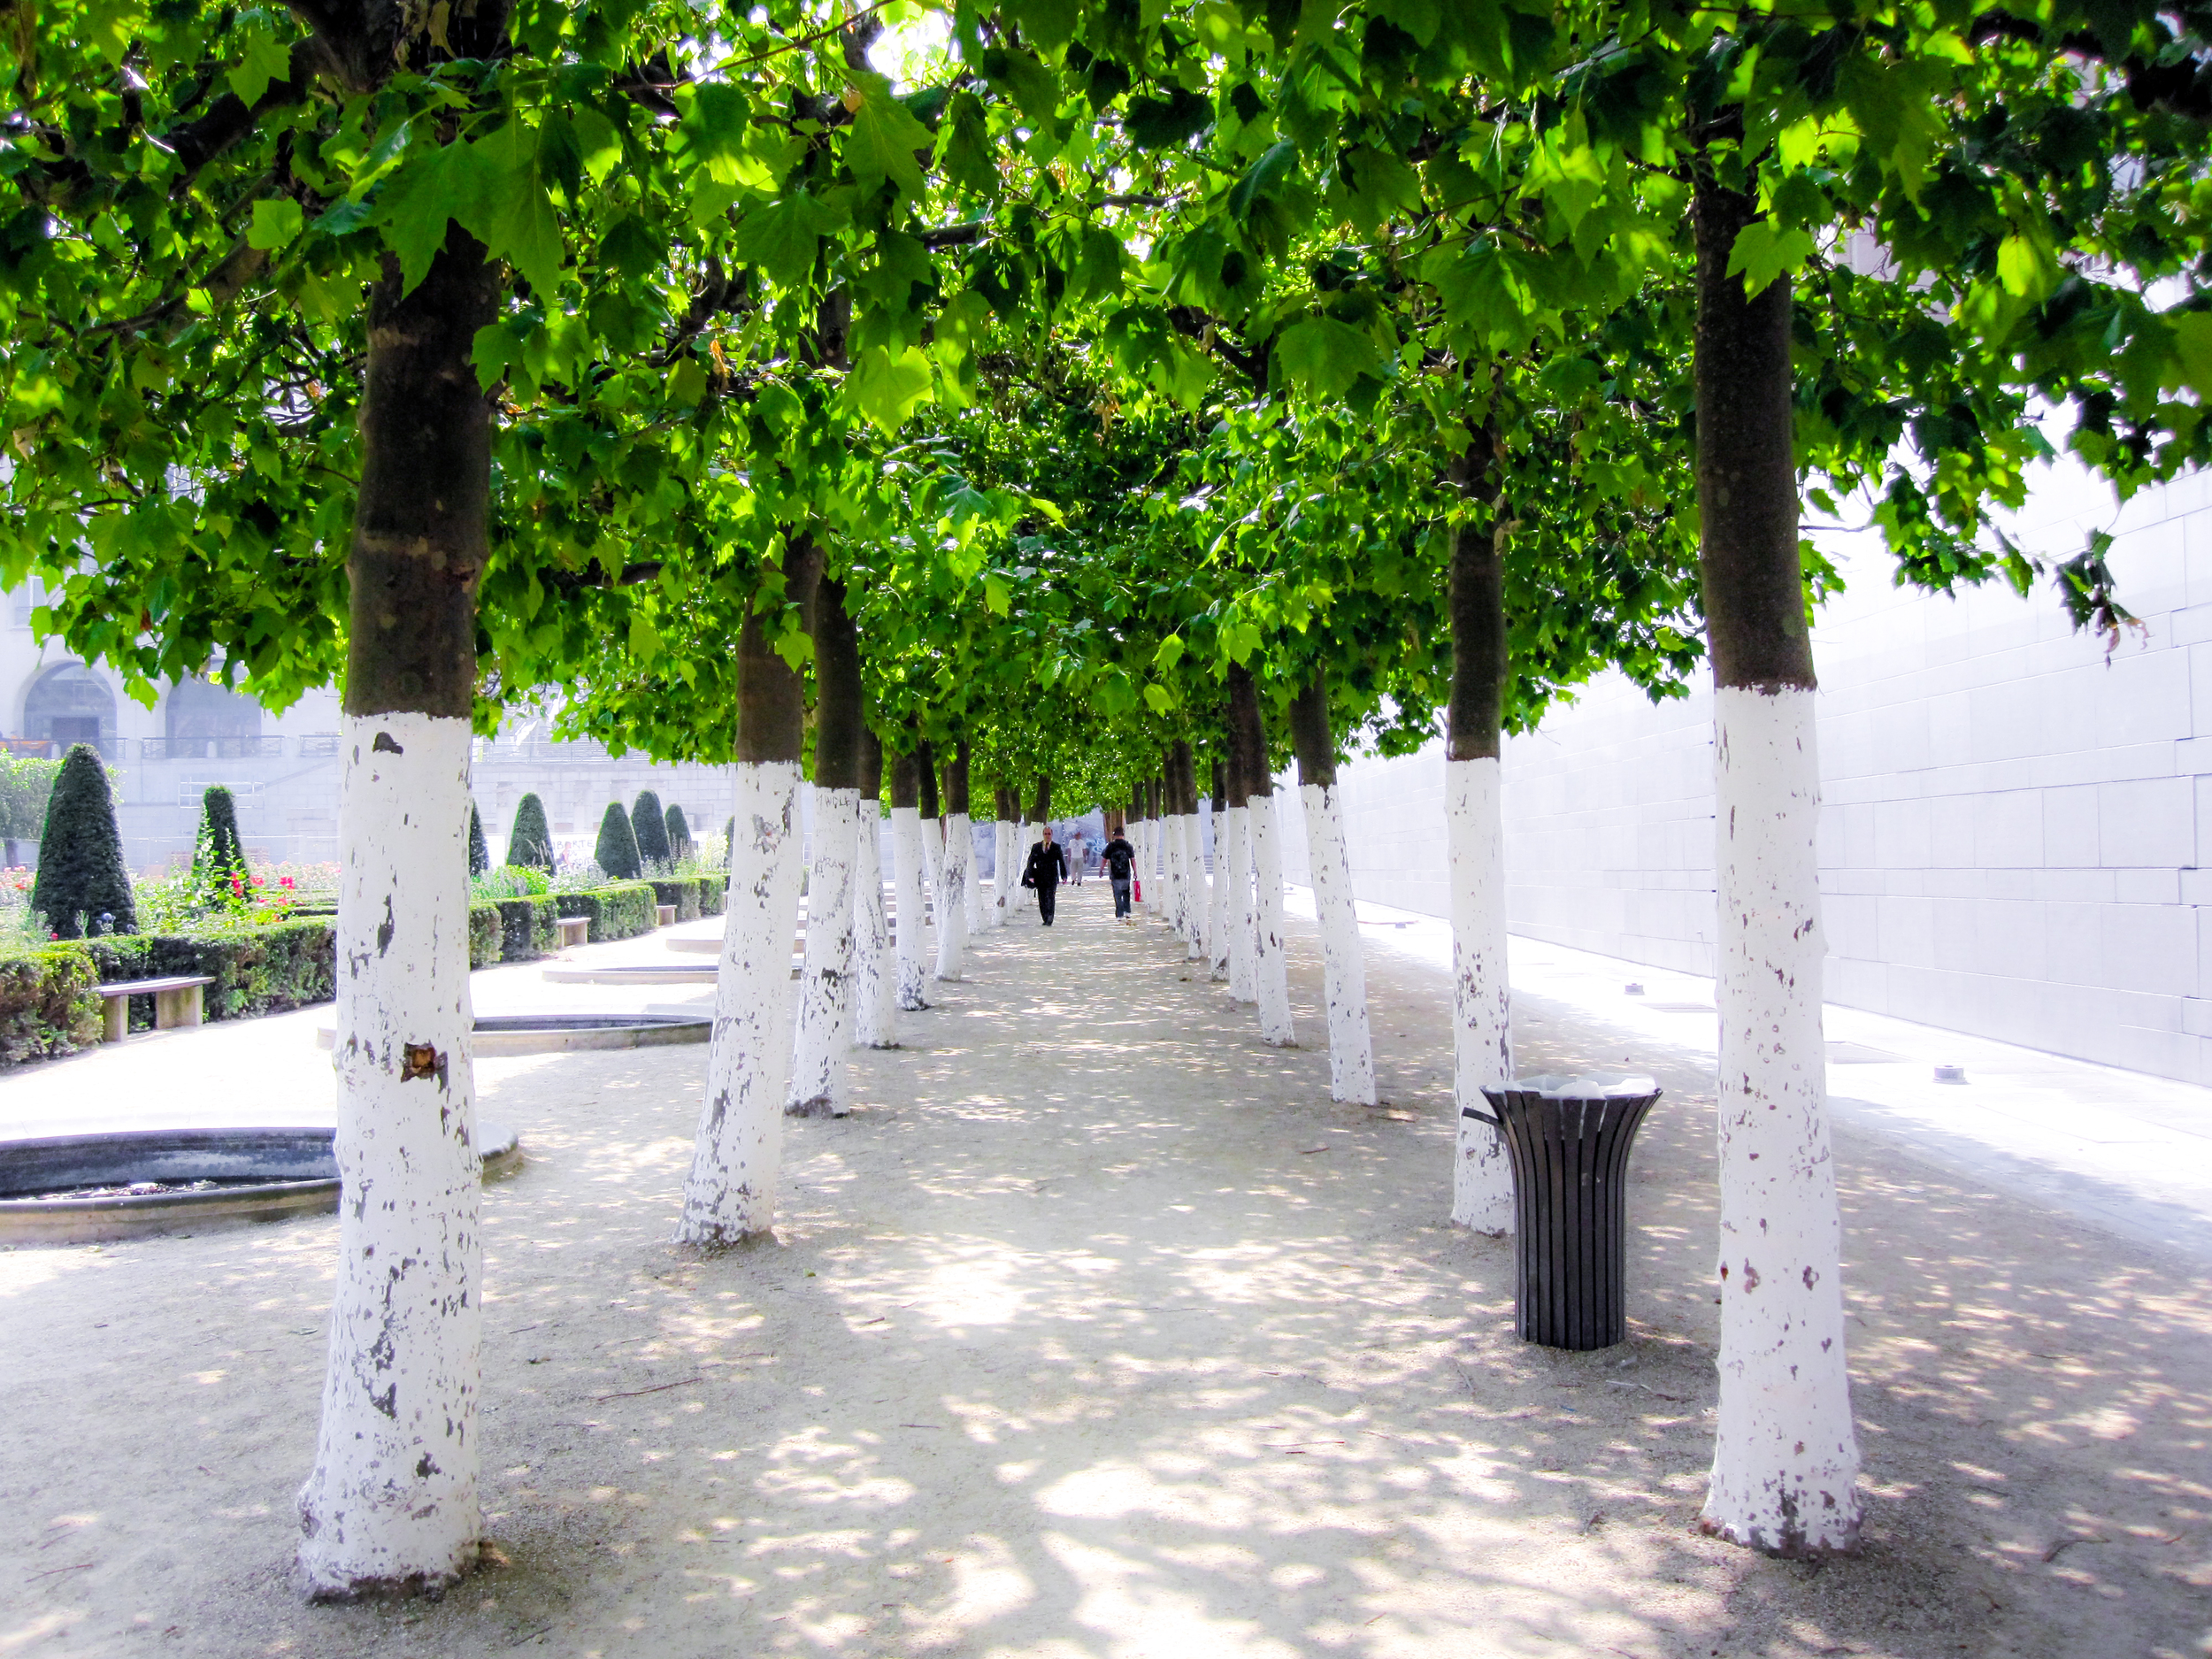 Bruxelles' Tunnel of Trees